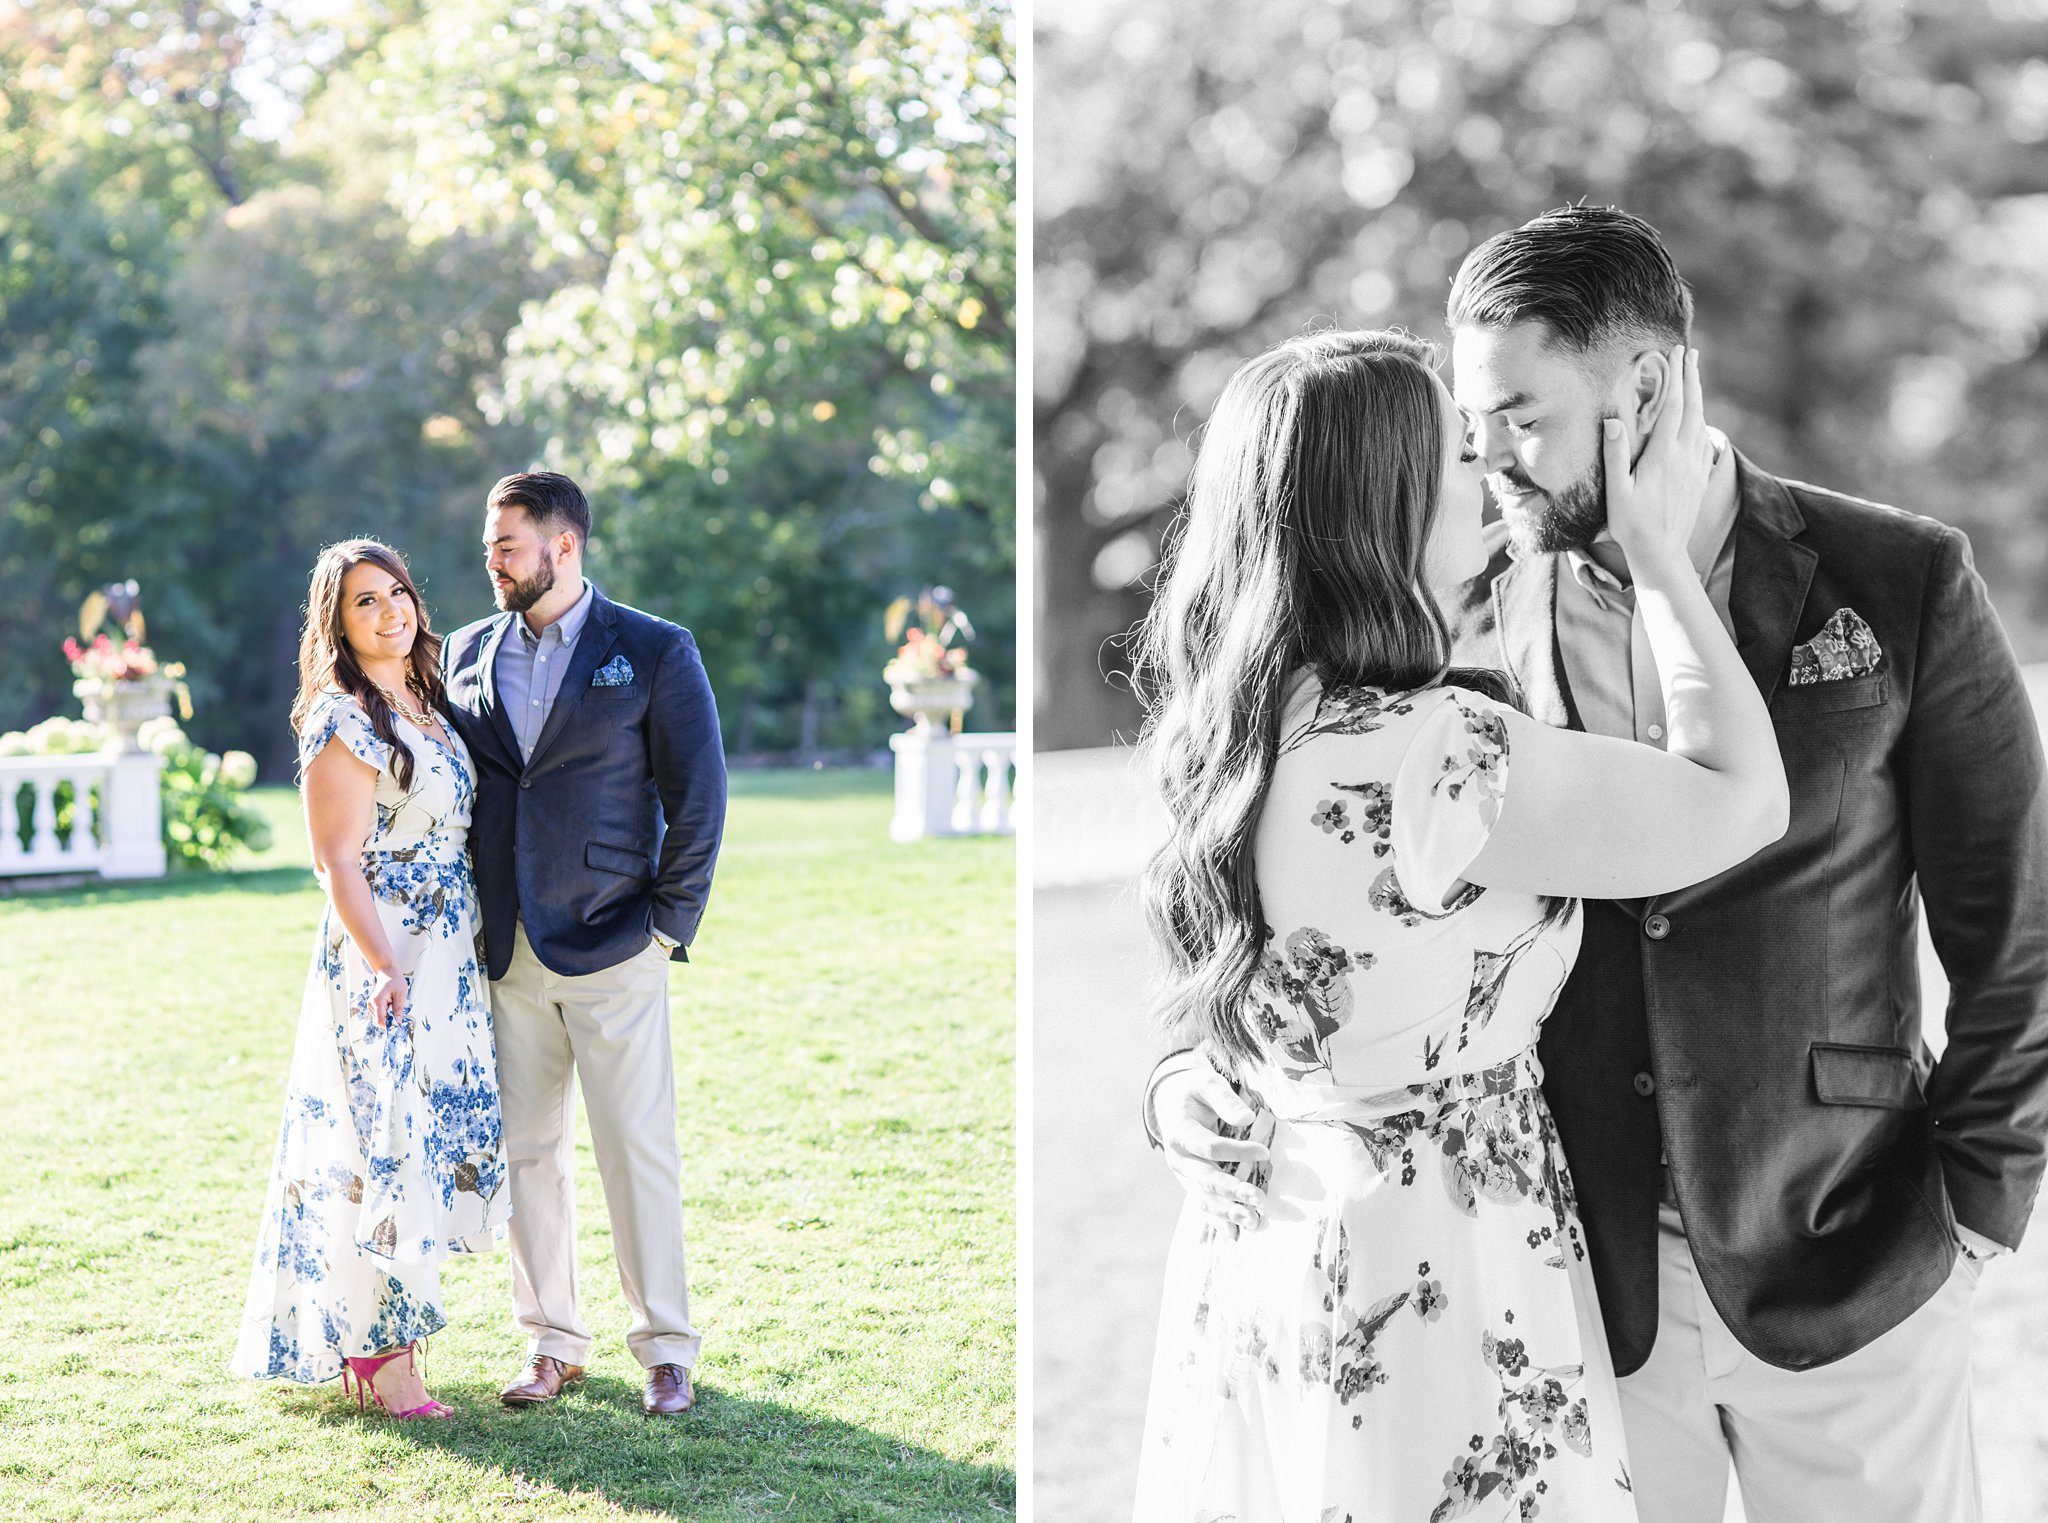 Mackenzie King Estate Engagement Photos by Amy Pinder Photography